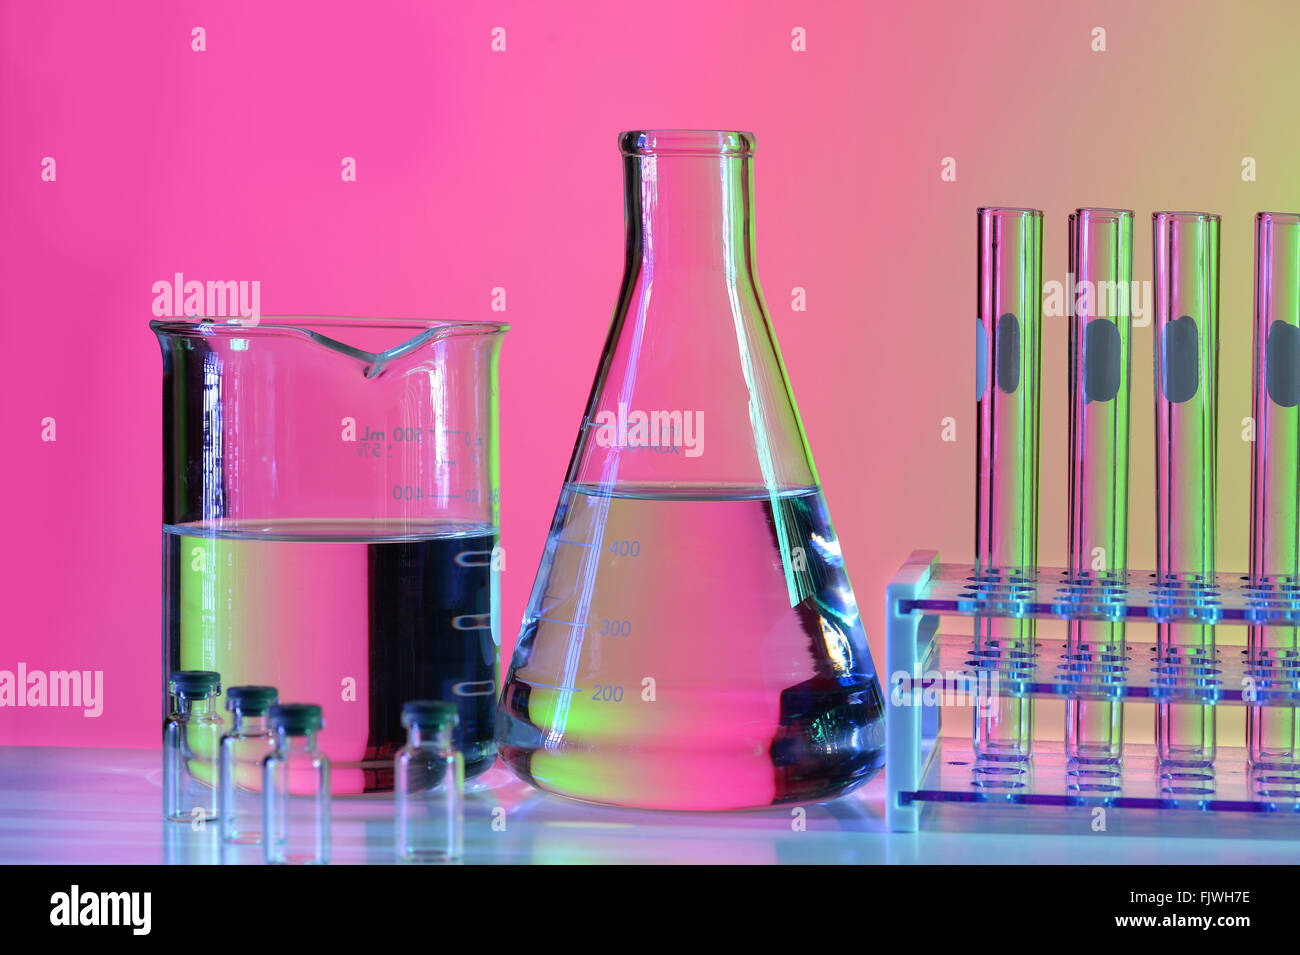 Laboratory glassware on reflective table over colorful background - Stock Image